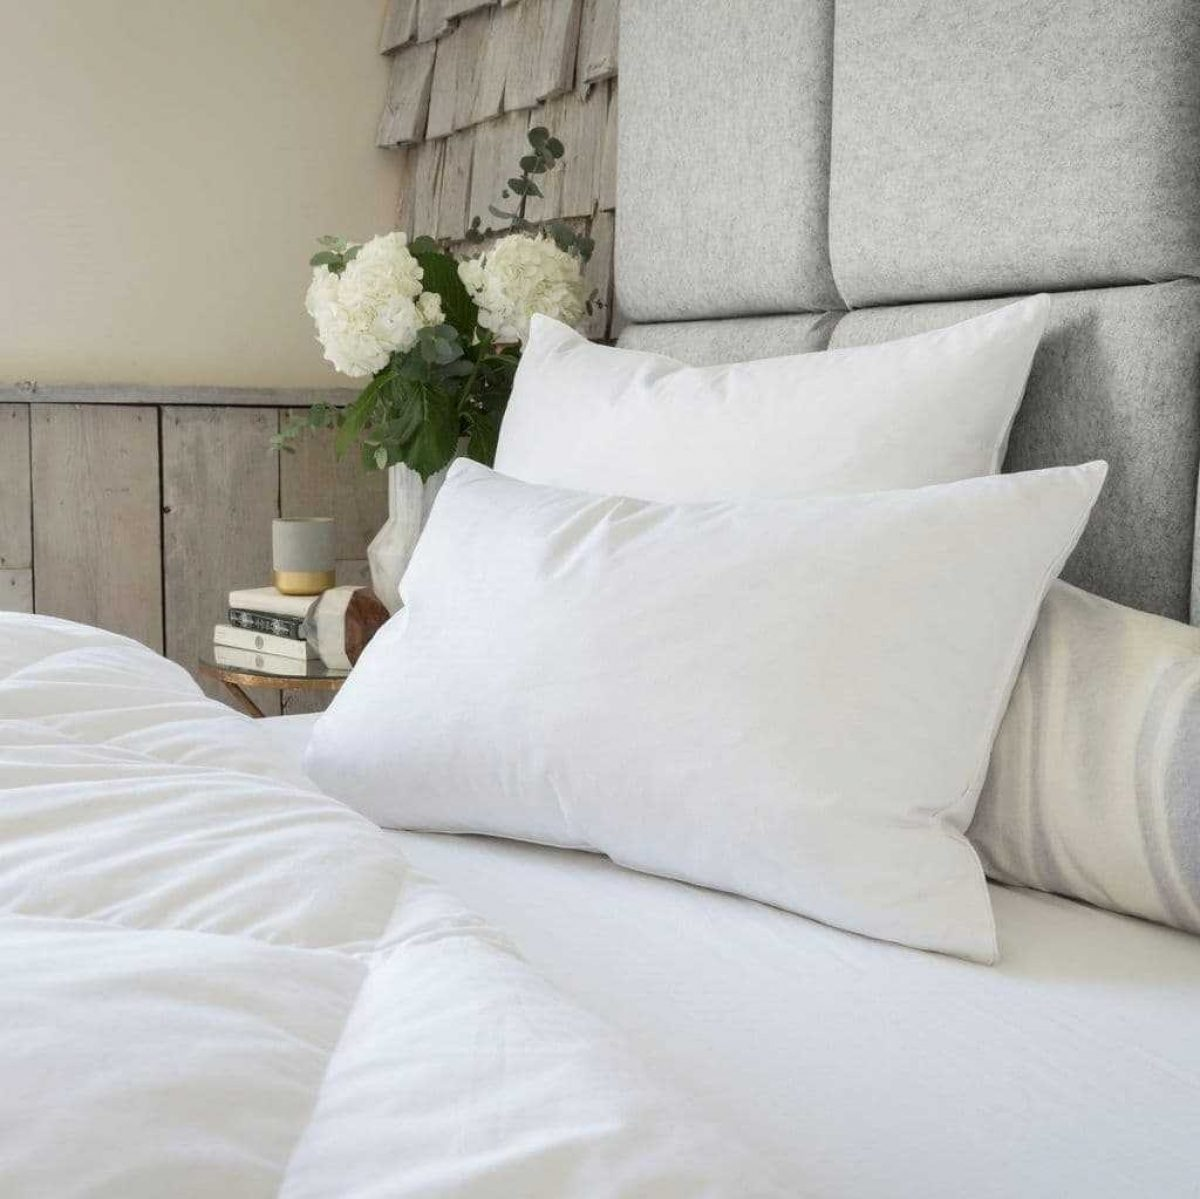 The fine bedding company goose down feather pillow 8112 p